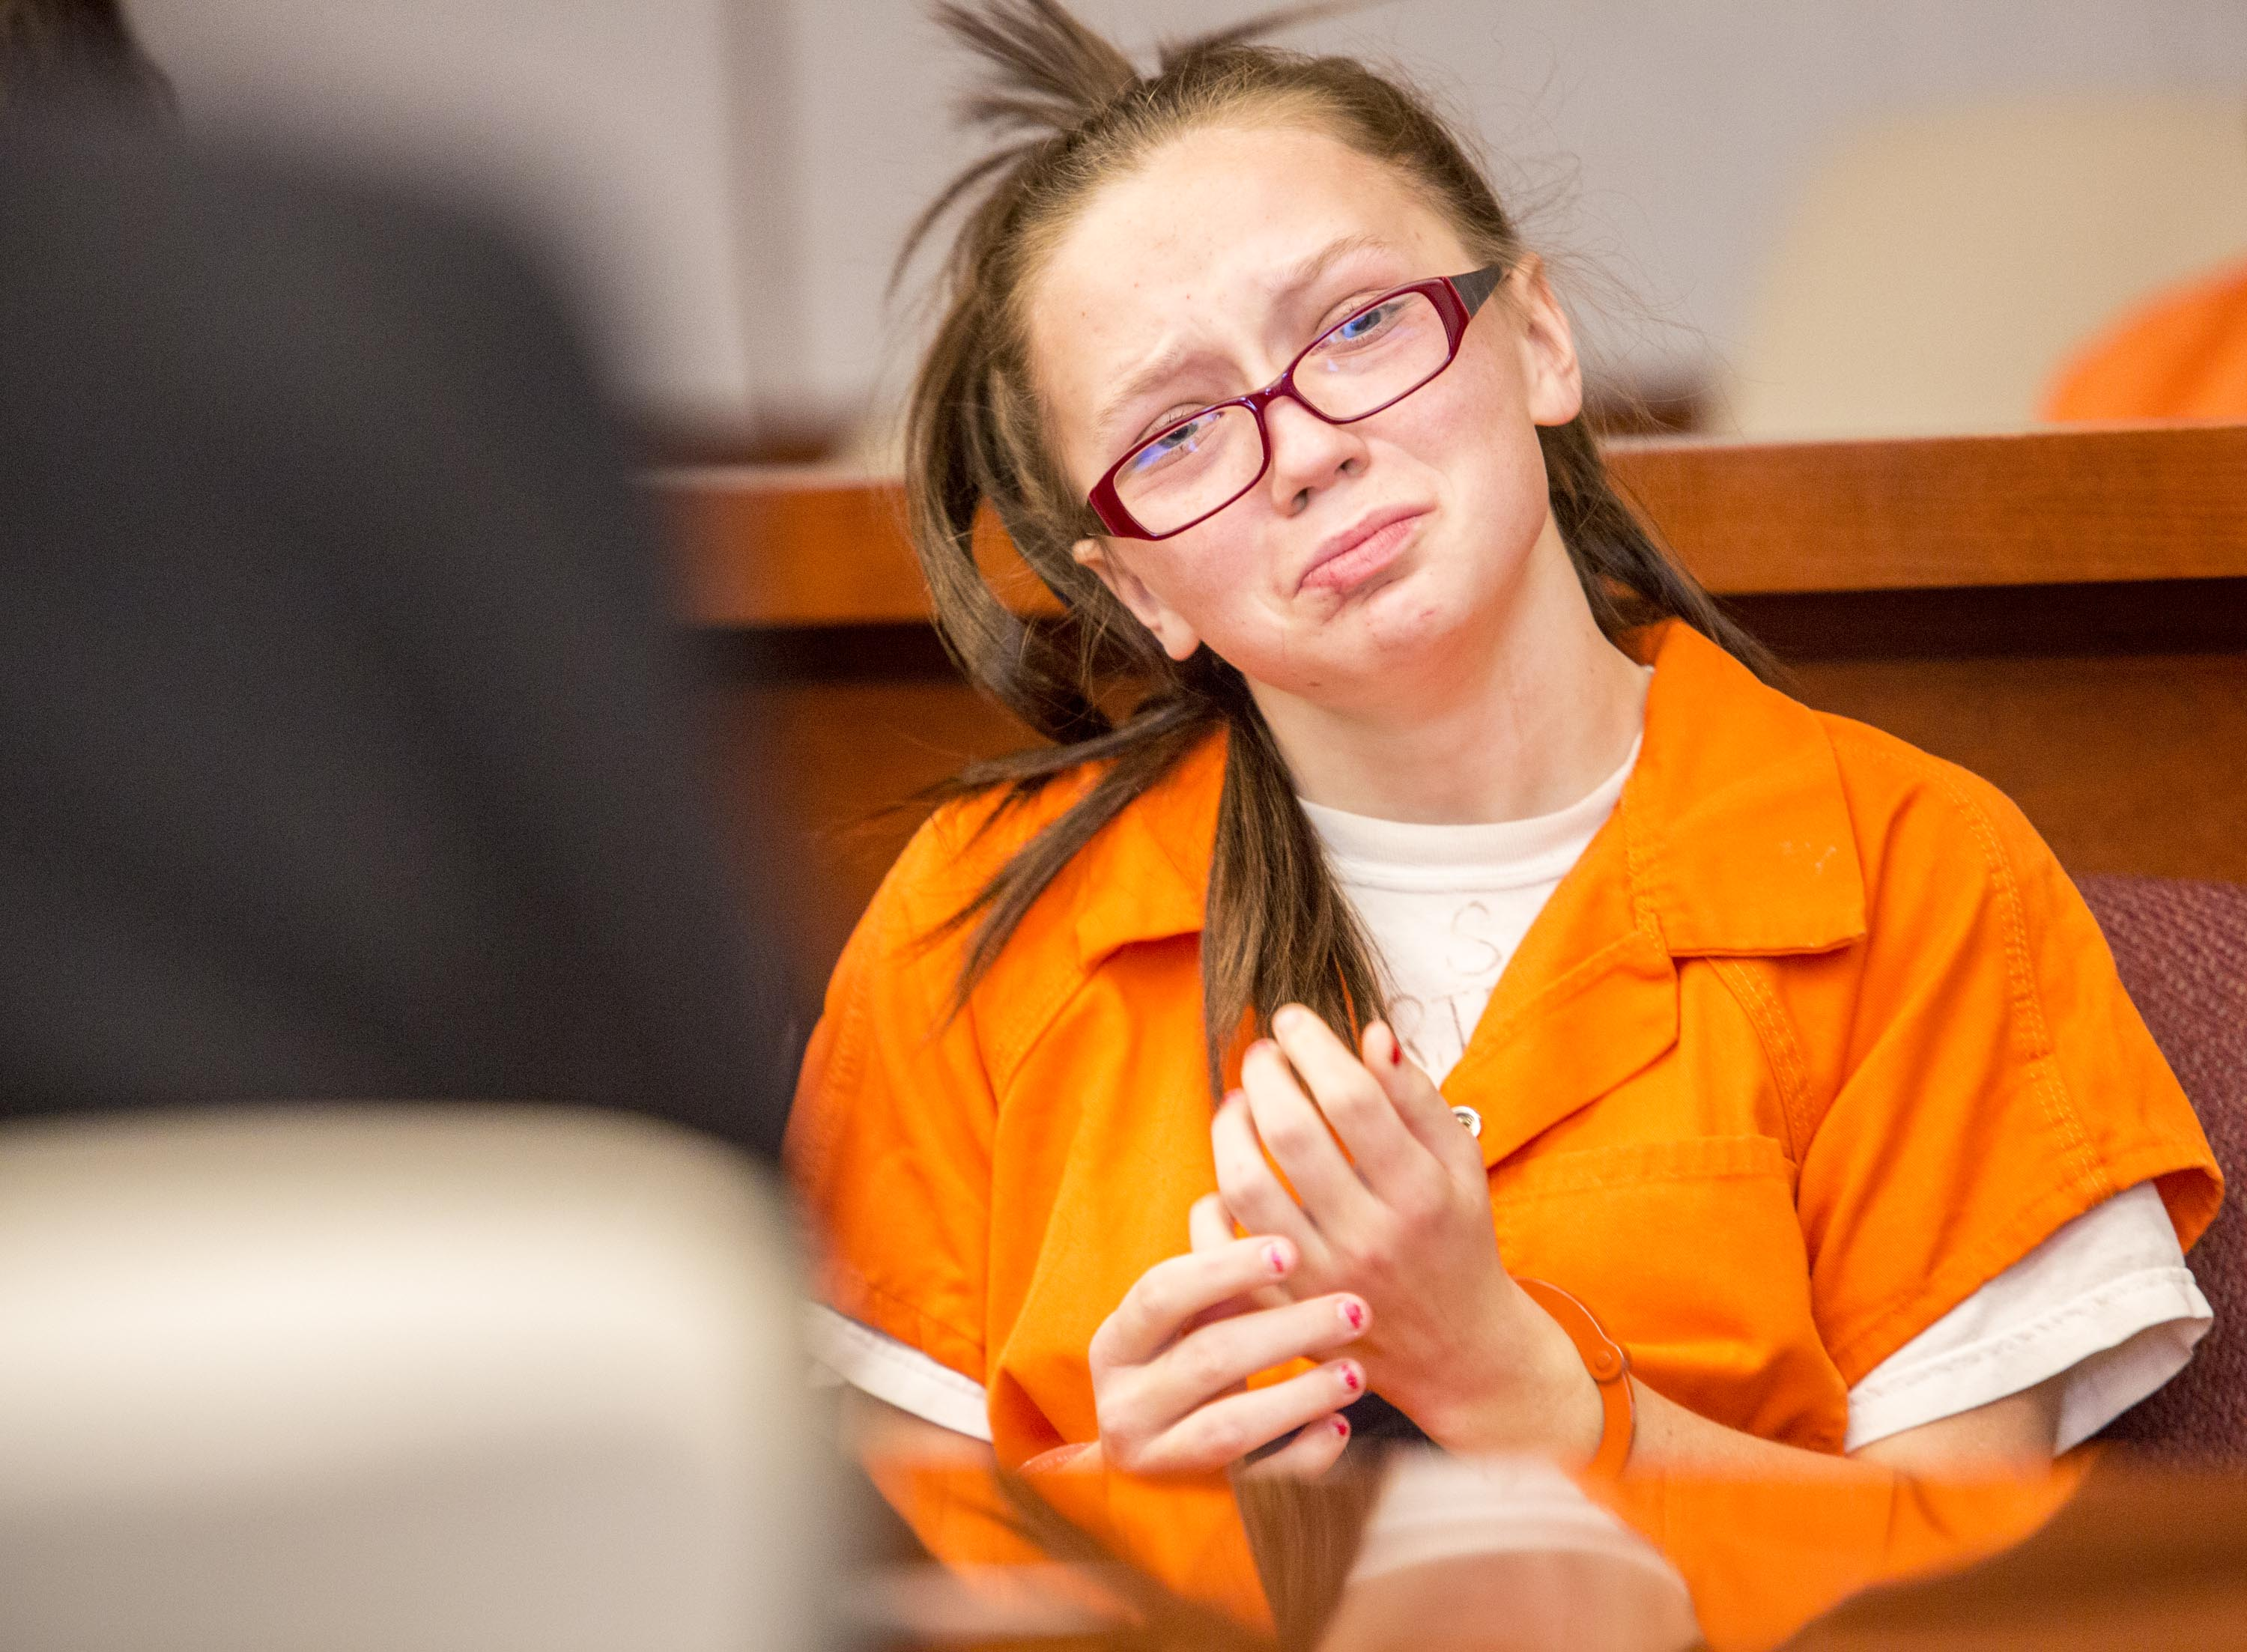 Jessica Carnline, 17, waits for the initial hearing in her case where she is charged with two counts of aggravated vehicular homicide.